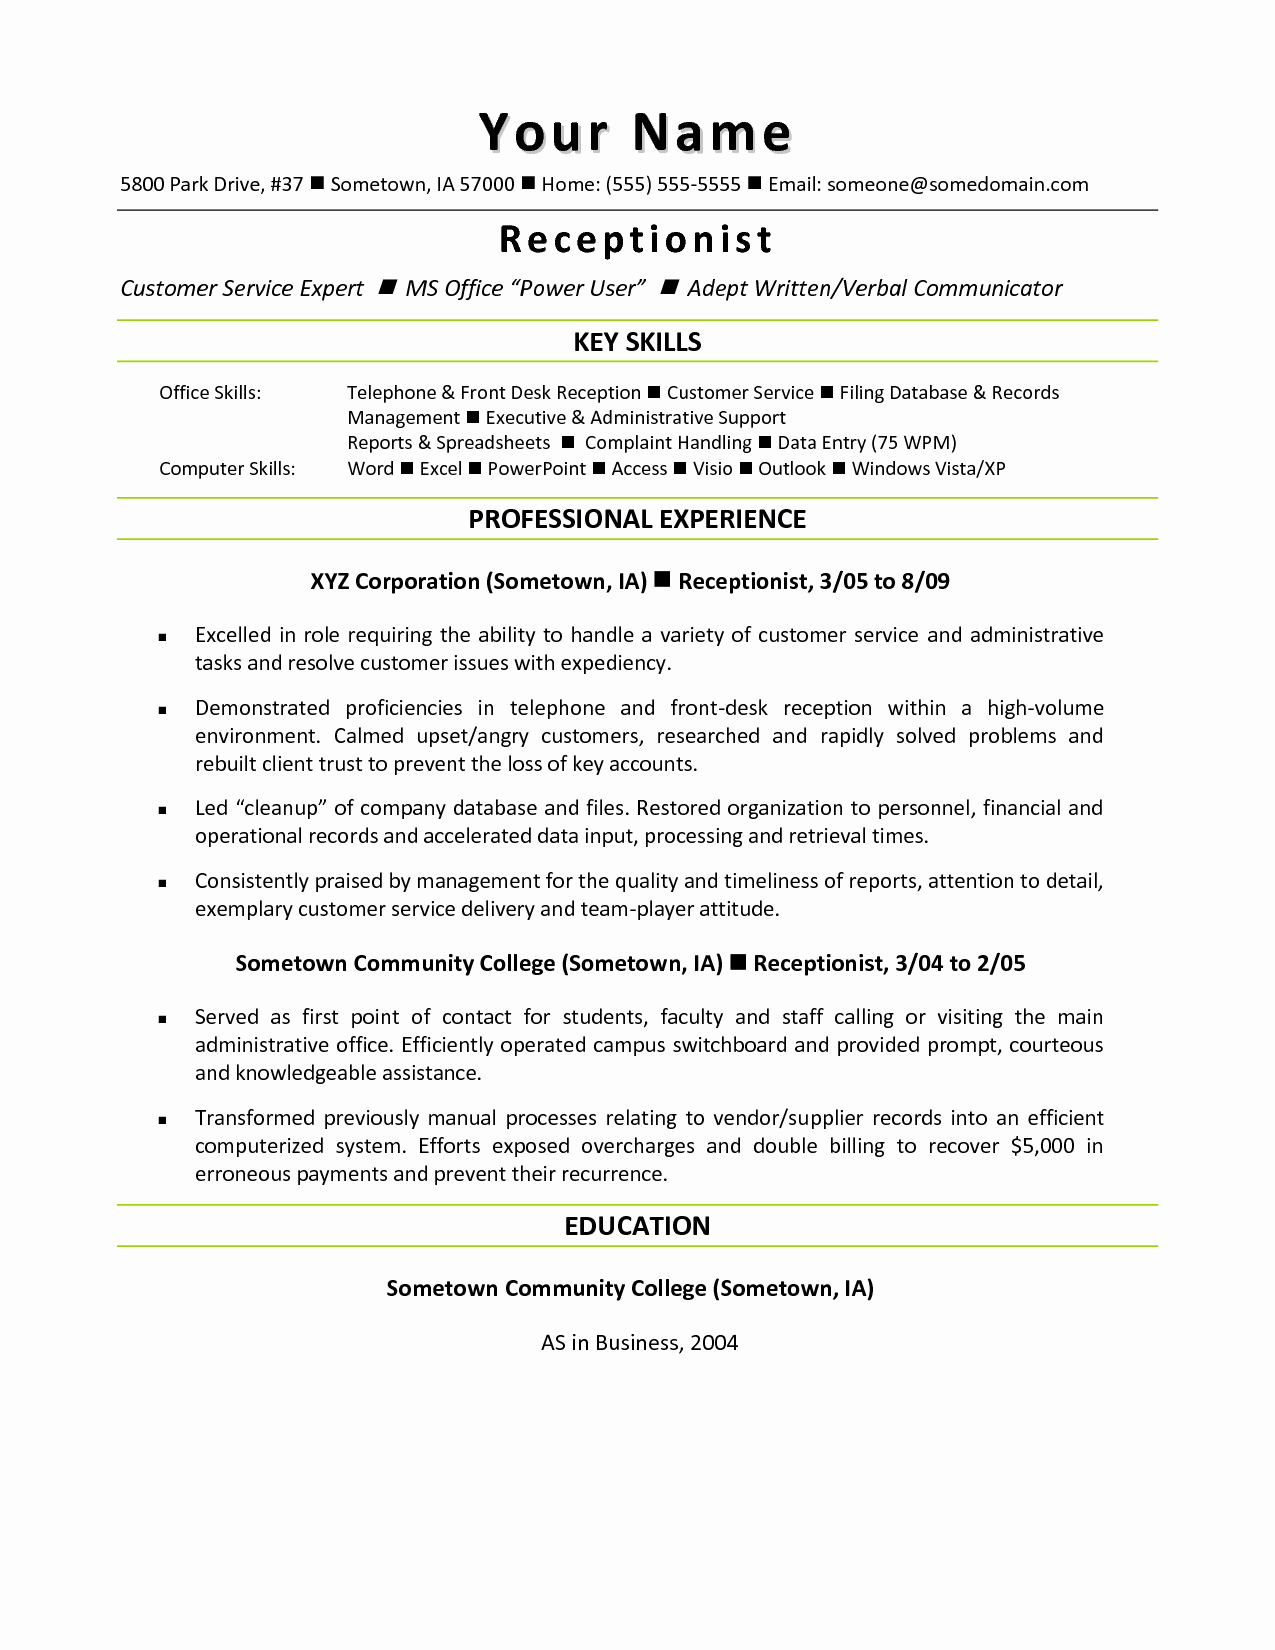 Resume Cover Letter Template for Medical assistant Examples